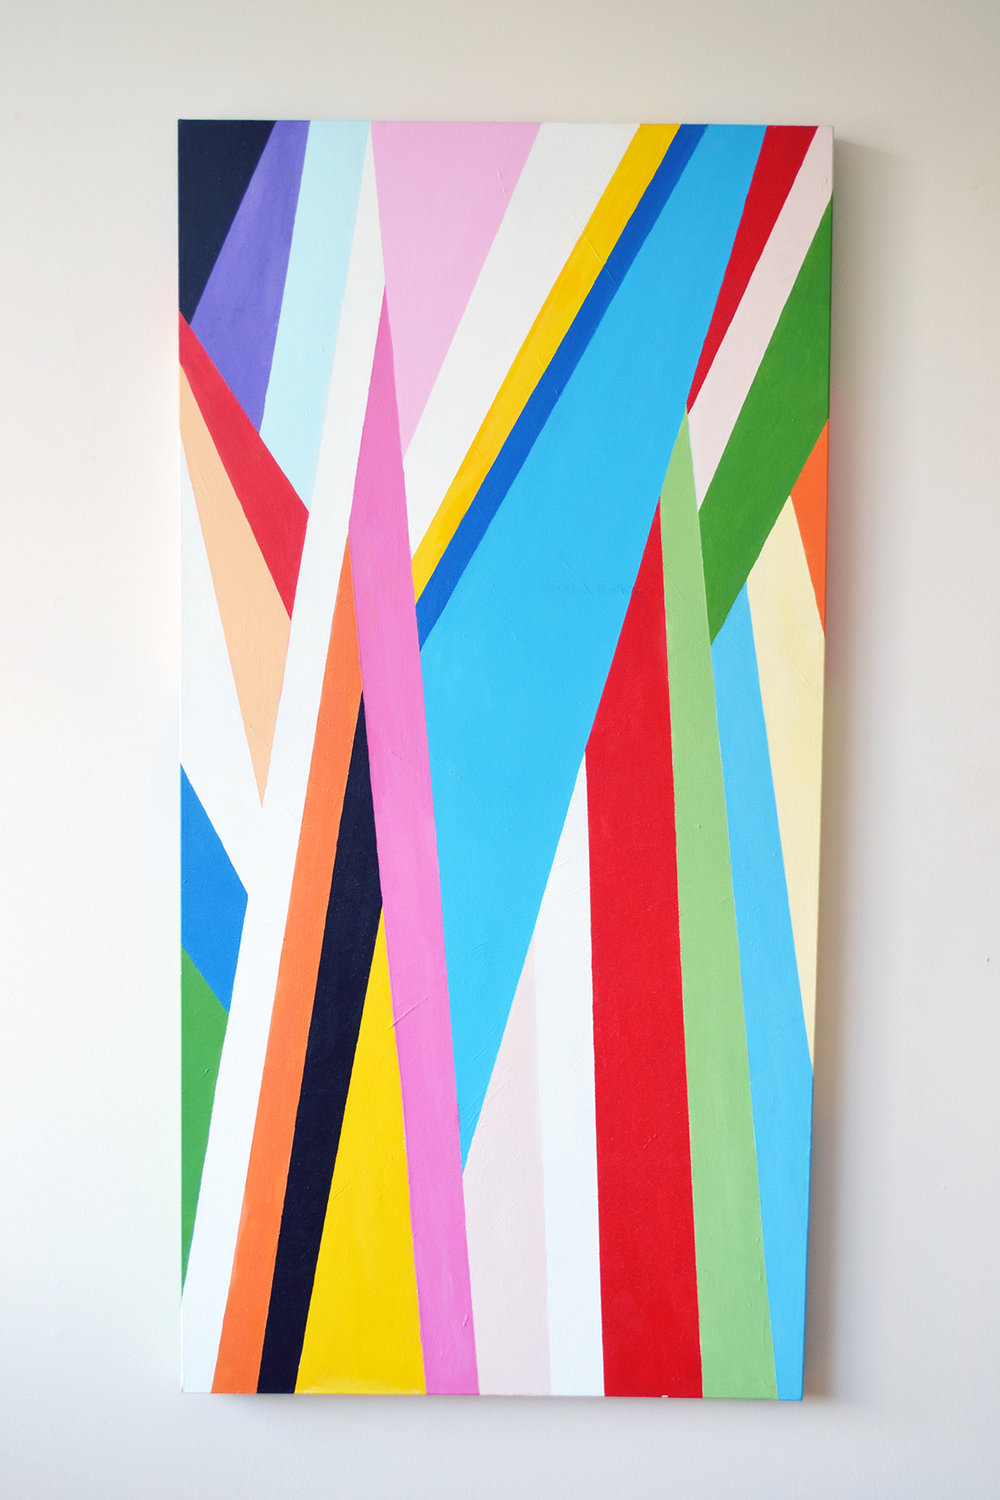 Untitled,  24x48 inches Acrylic on canvas